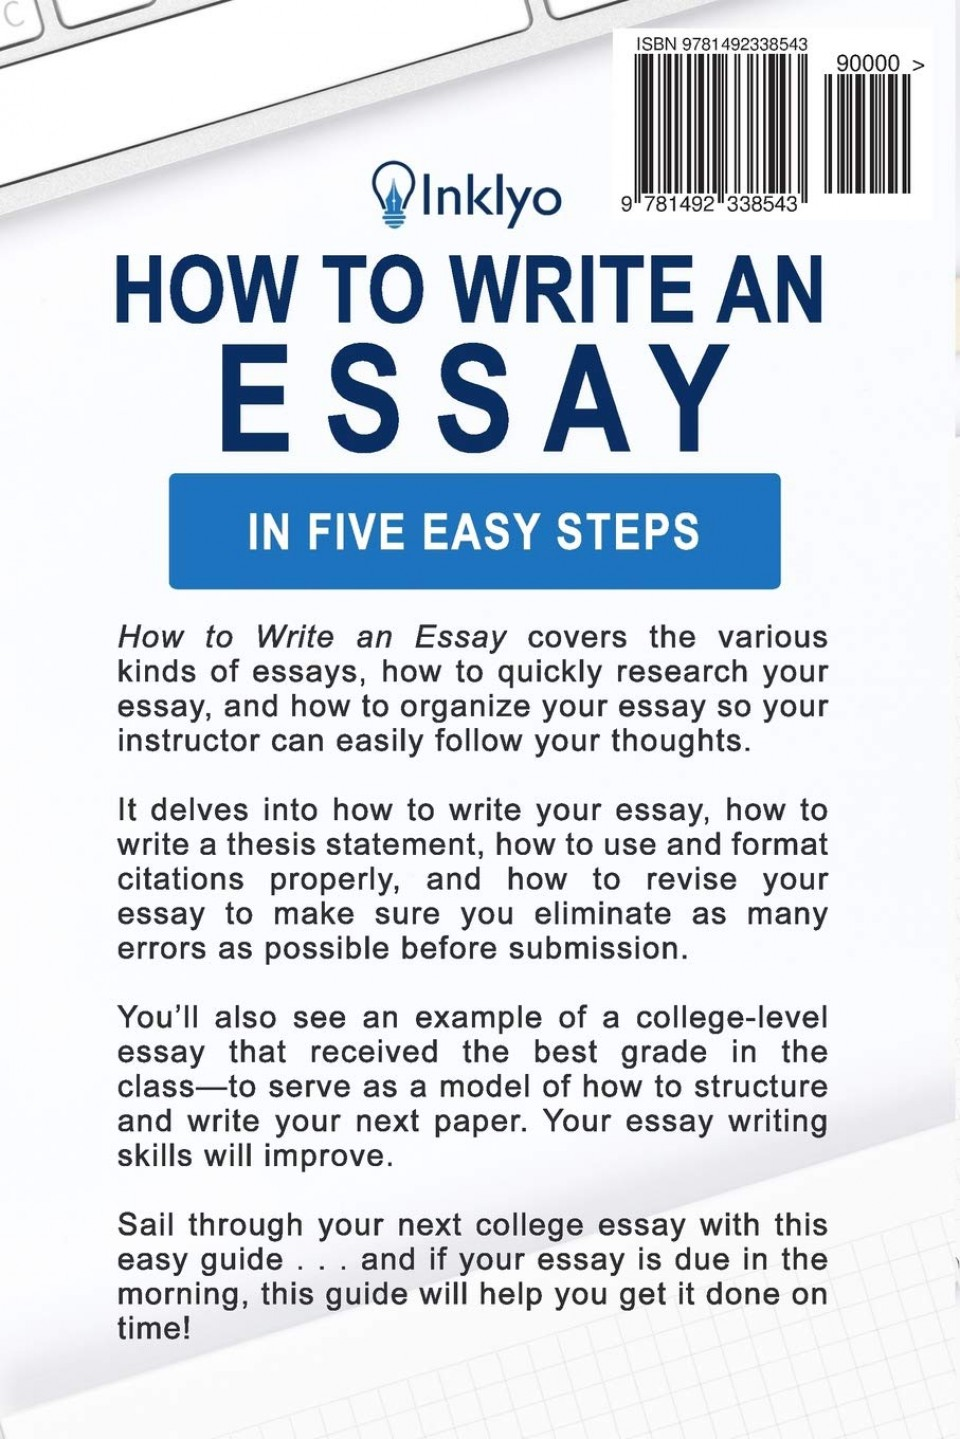 001 Essay Example Writing Breathtaking App Topics For High School Students Apk 960